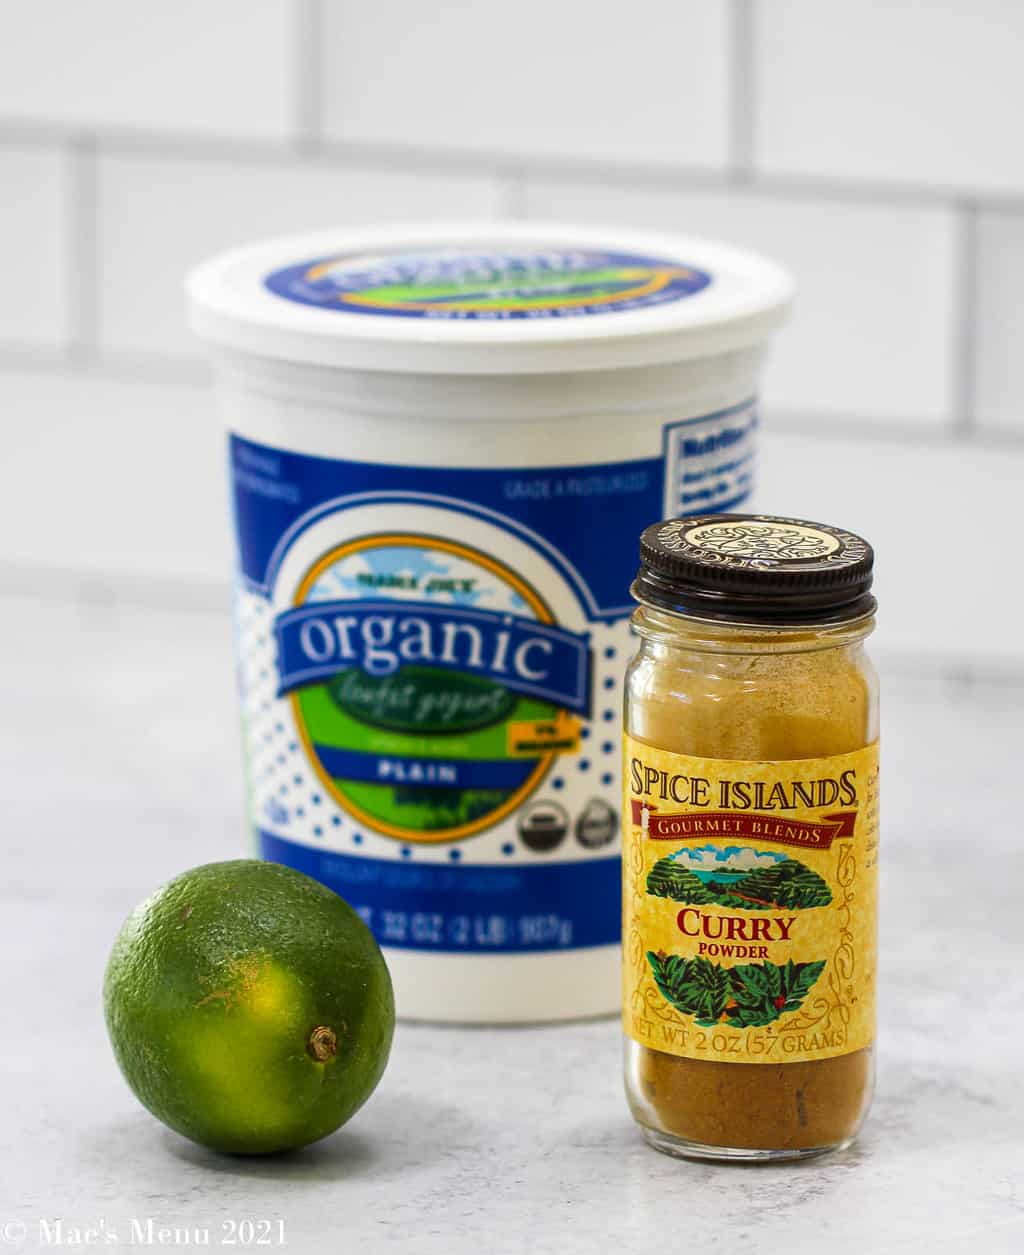 A jar of yogurt, lime, and bottle of curry powder